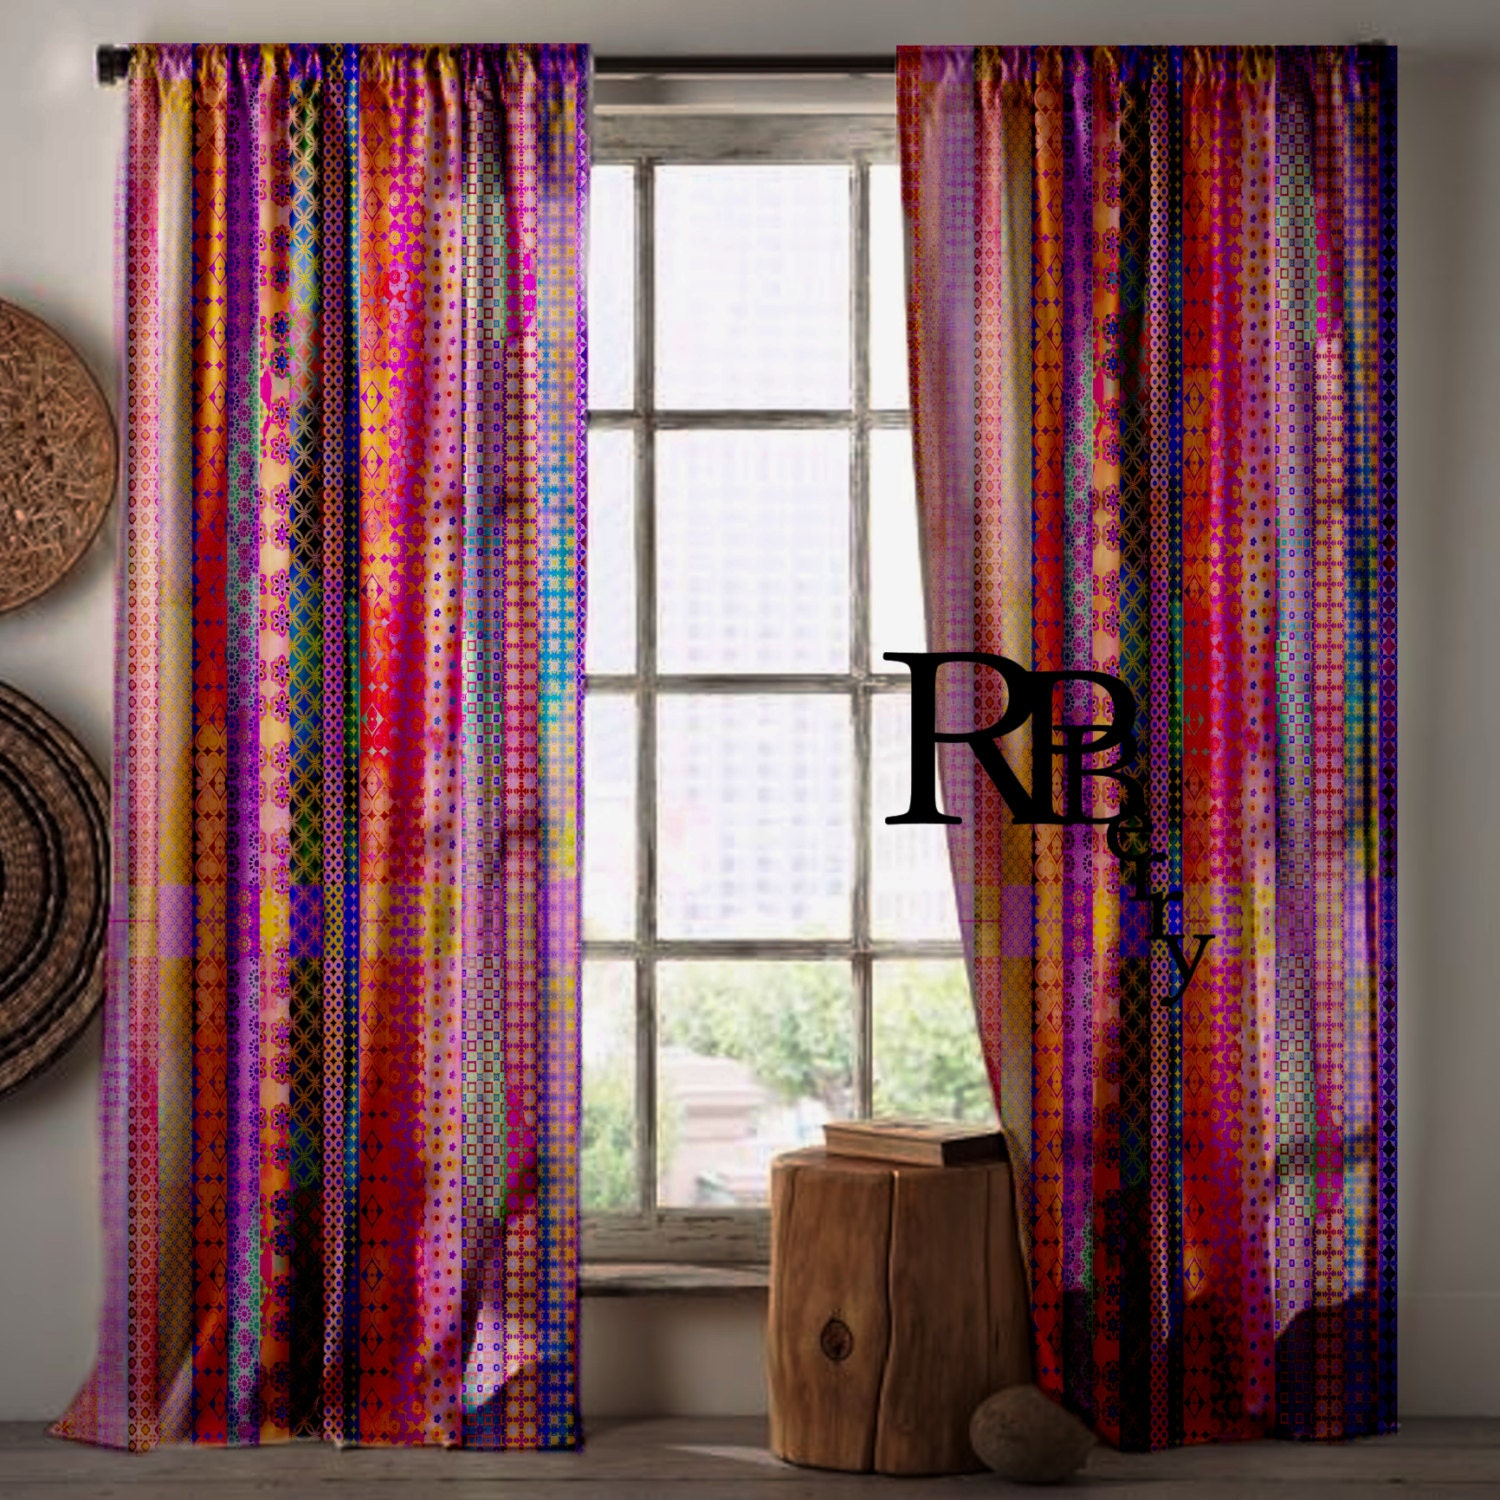 Bohemian Gypsy Curtains Moroccan Drapes Purple By